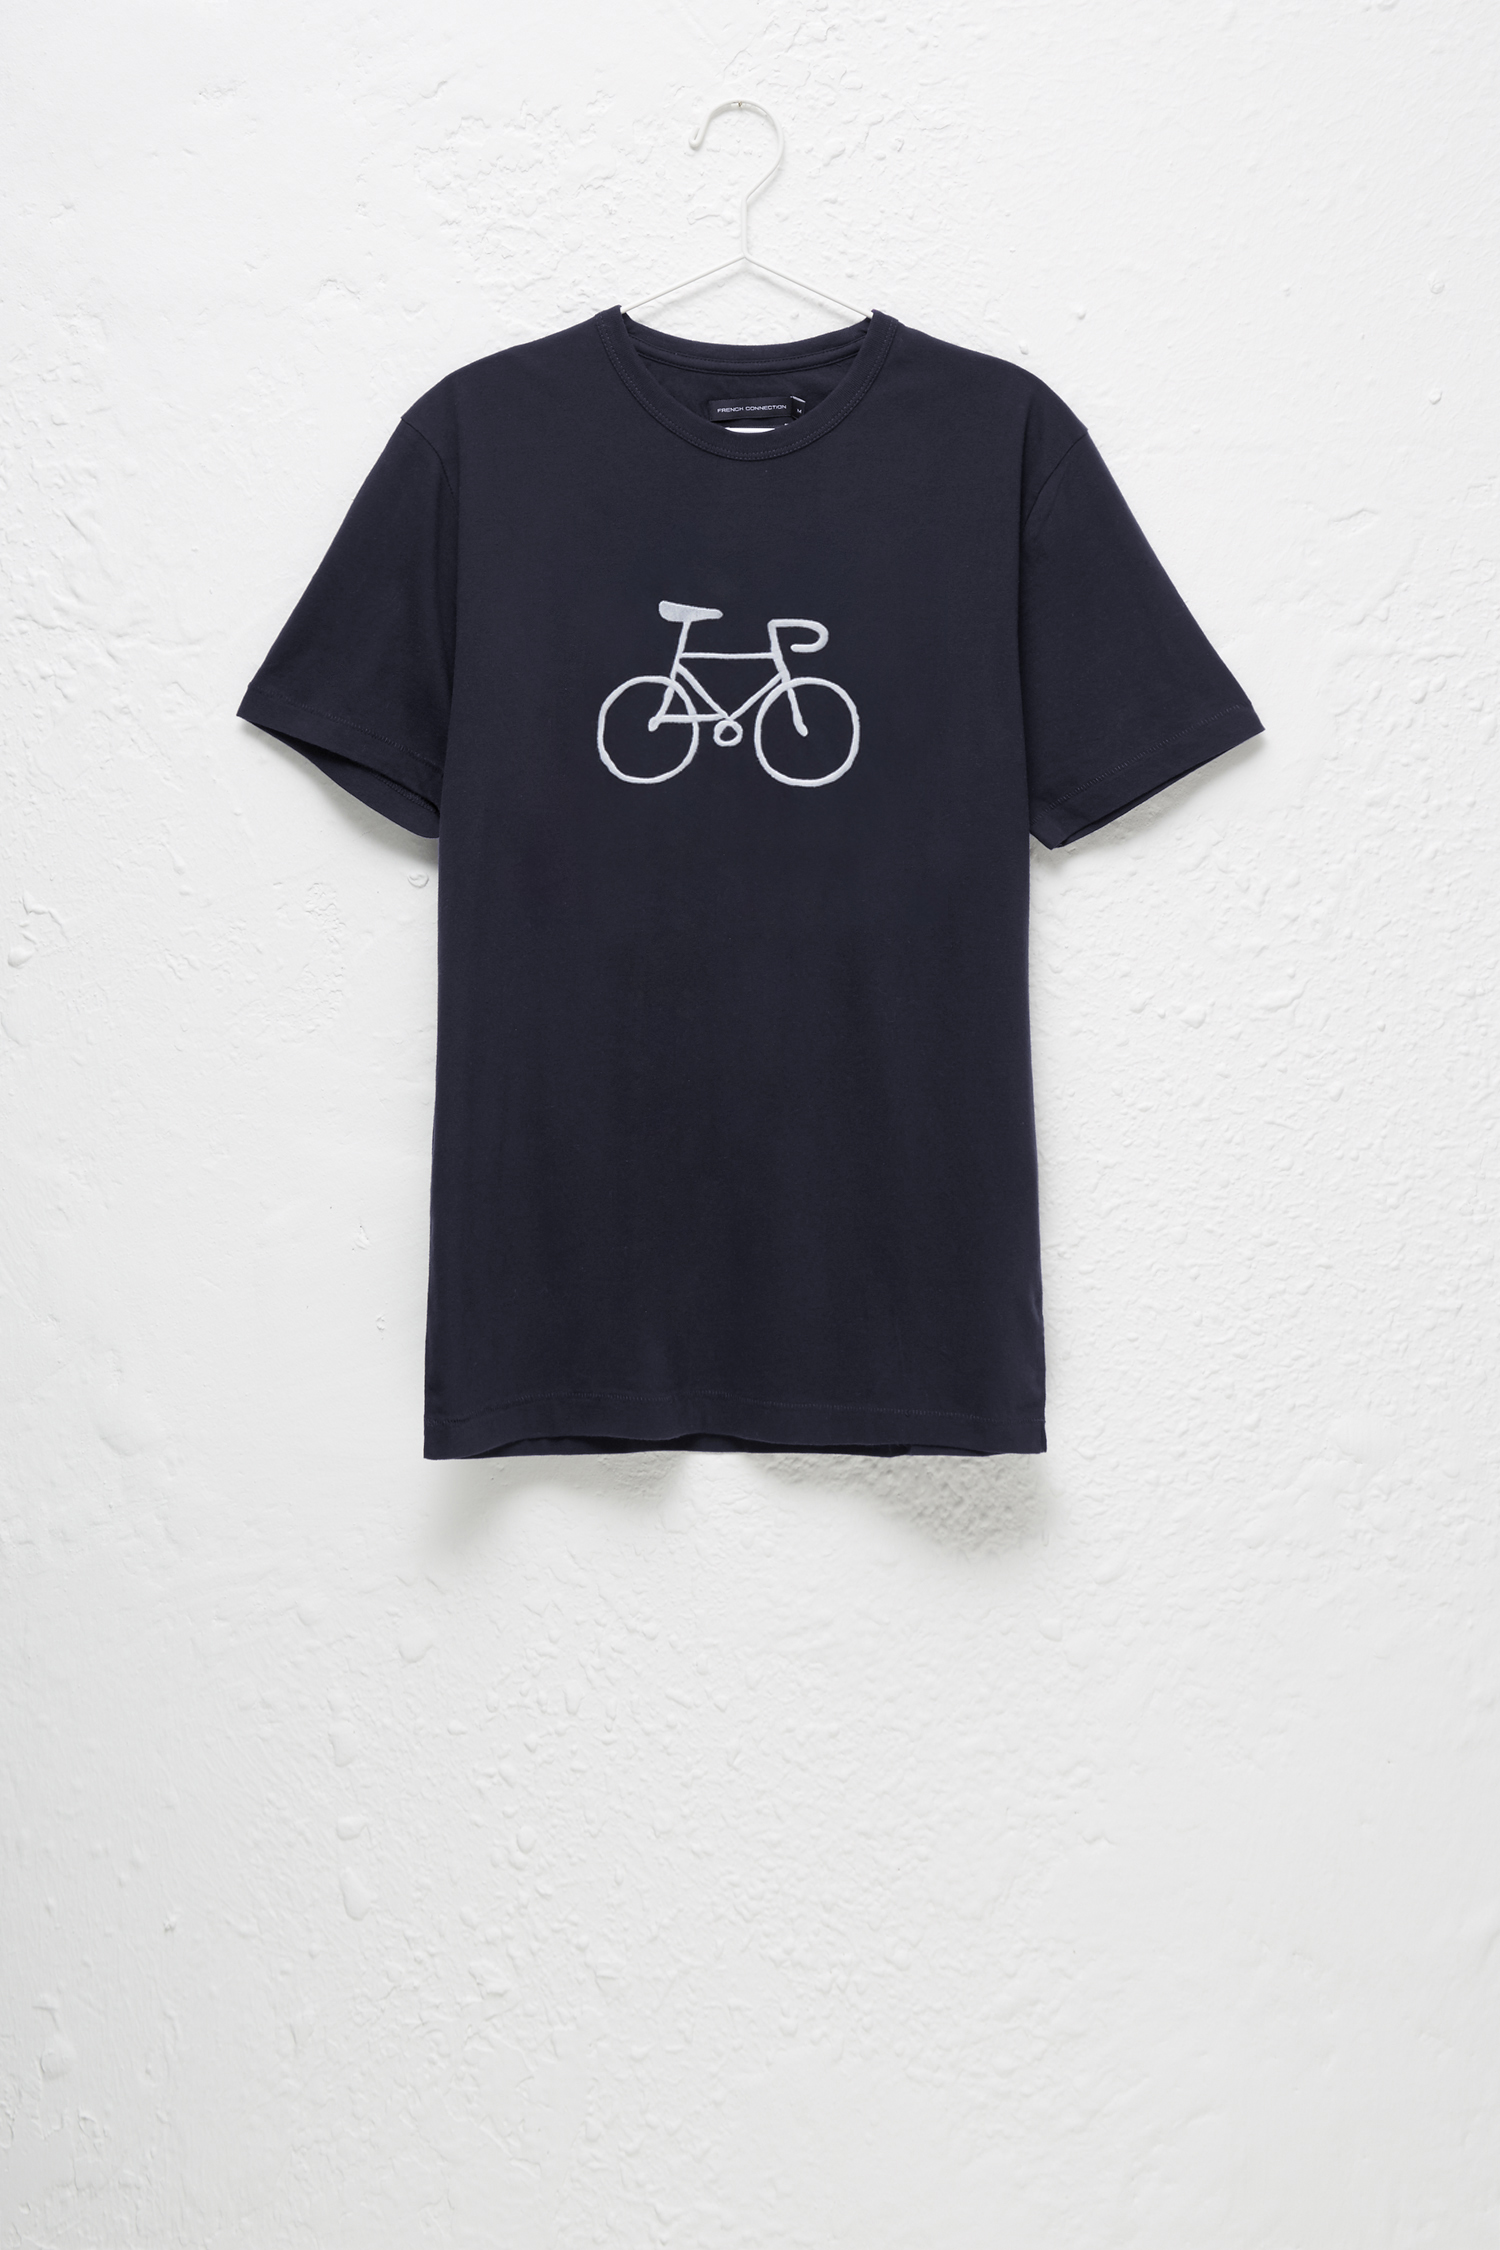 Embroidered t shirts ... bike embroidered t-shirt. loading images. FYVXEFB